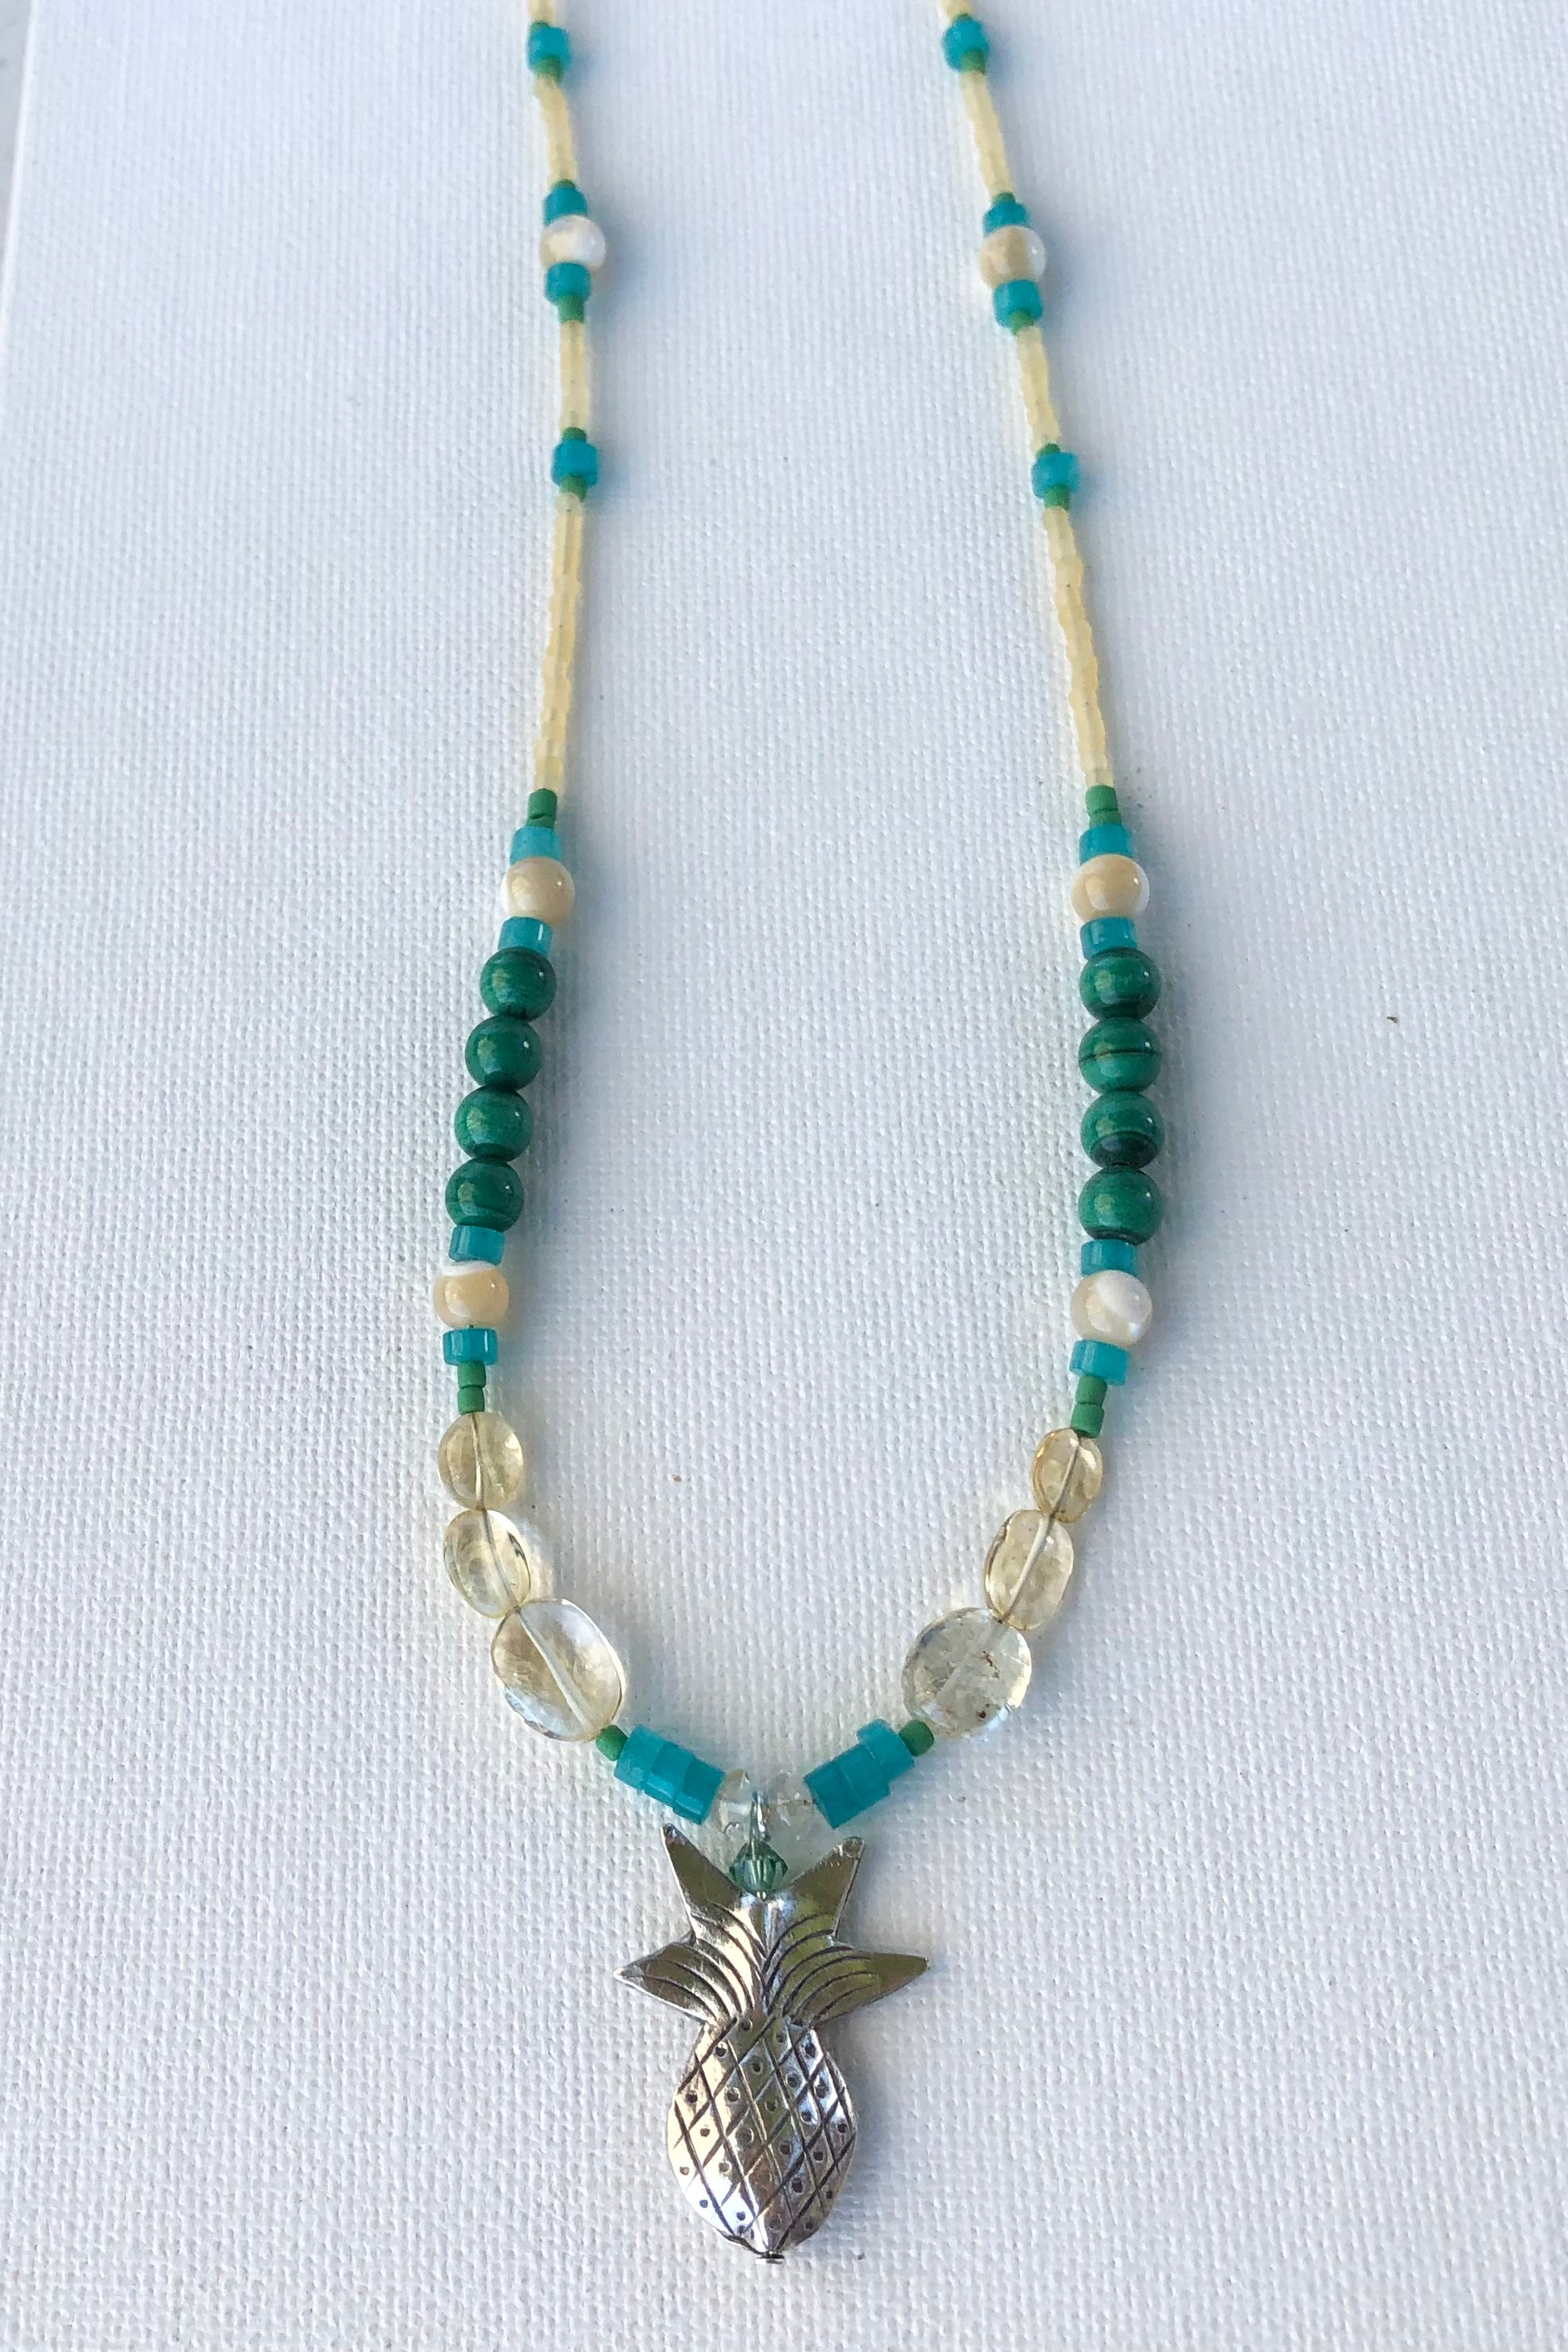 This necklace Sunny Coast inspired one off piece was made in our Noosa Studio,  There is a Thai silver pineapple as the central focus, the beads are the green, gold and turquoise of the area.